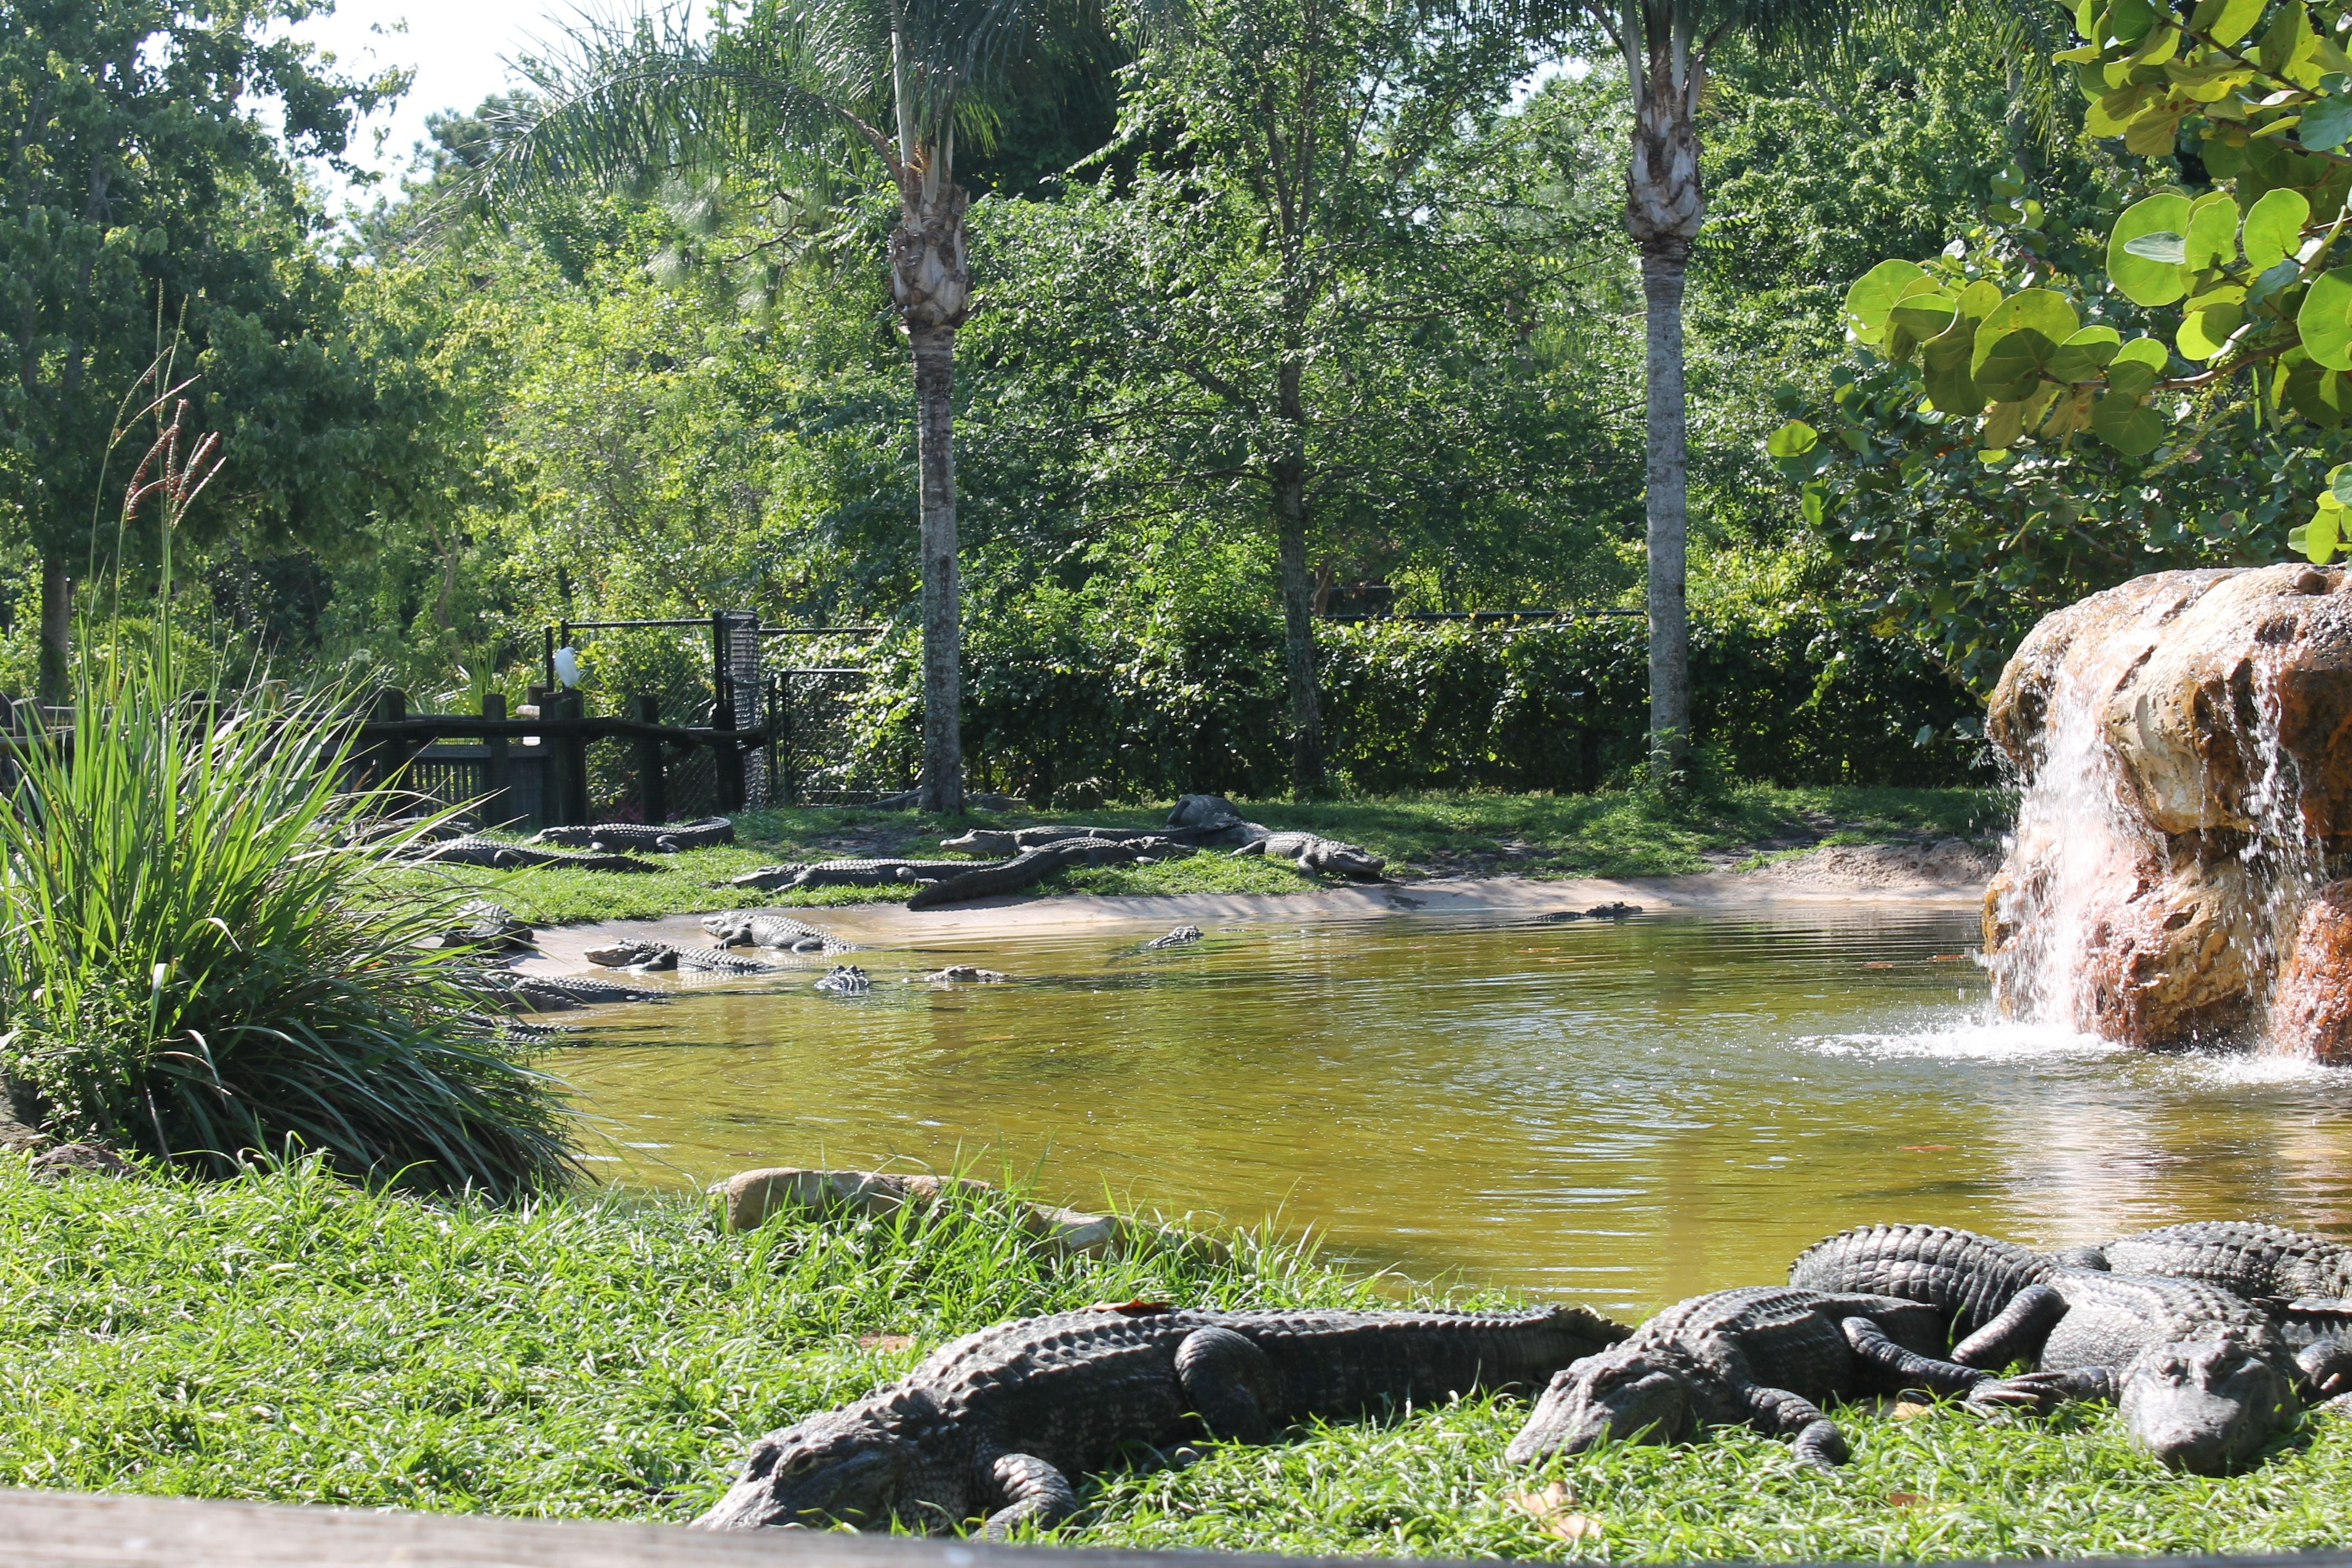 Gatorland off road experience